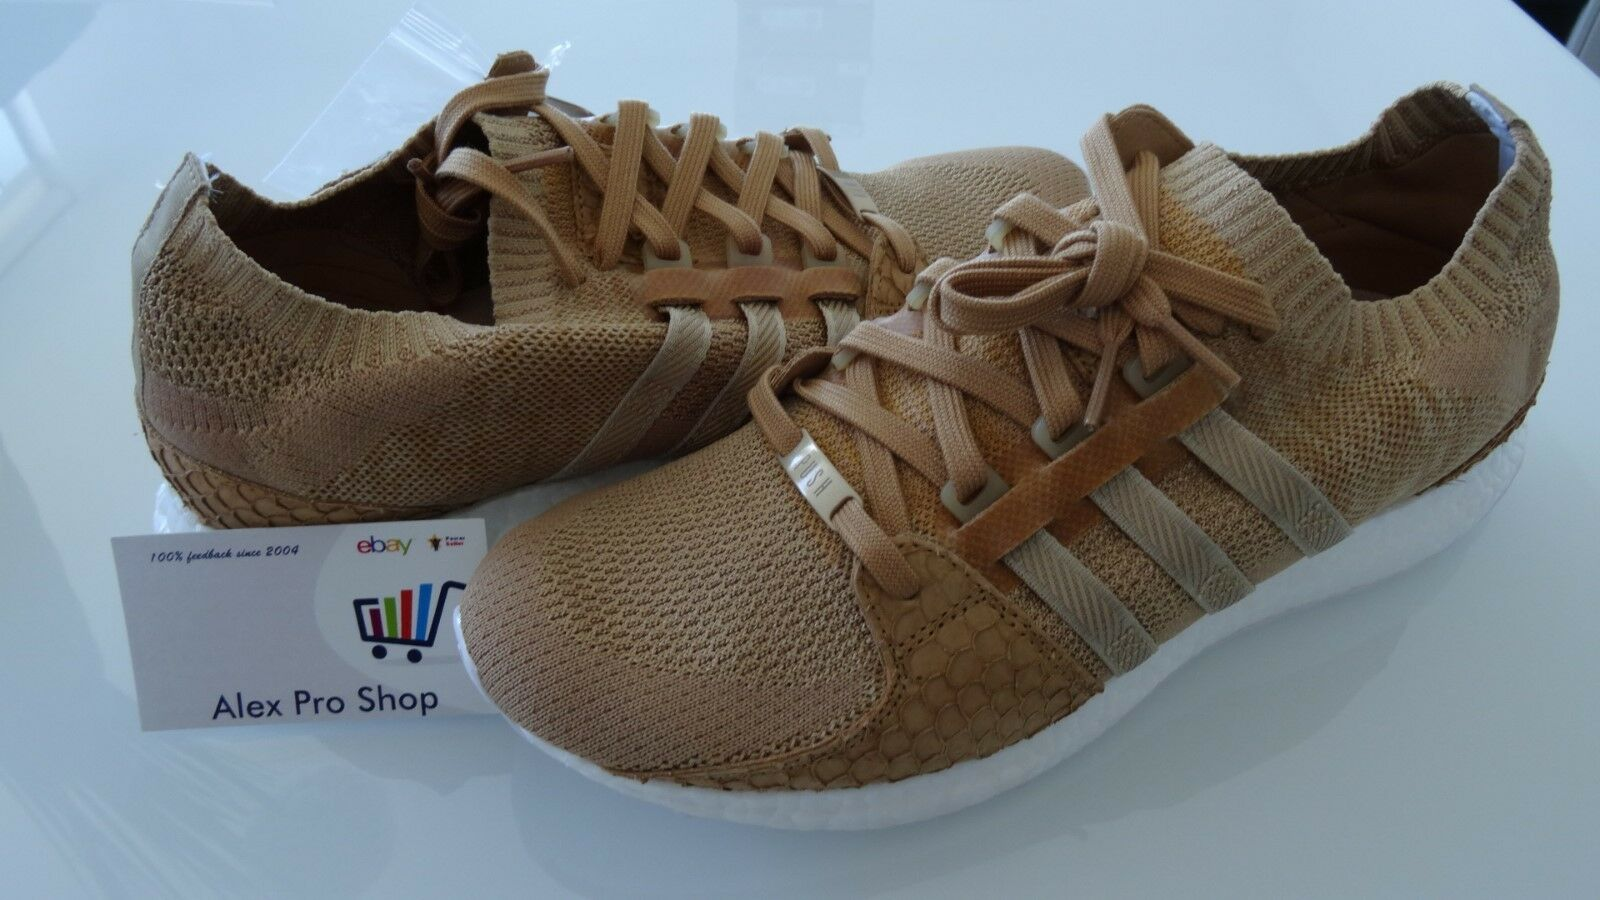 New Men's Size 6 ADIDAS EQT SUPPORT ULTRA PK KING PUSH BROWN PAPER BAG DB0181